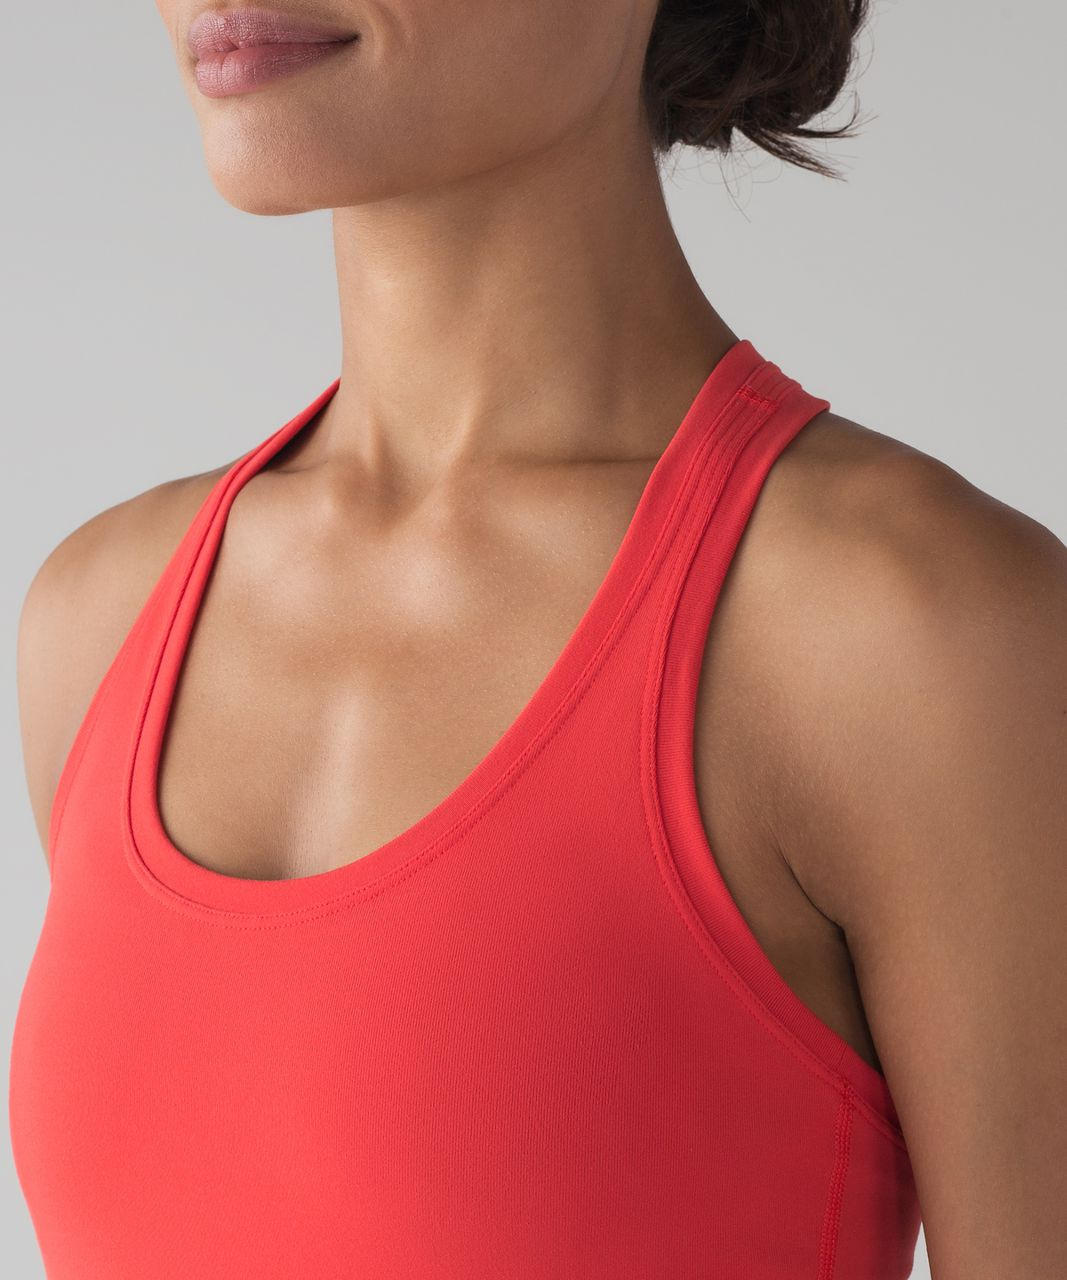 Lululemon Cool Racerback II - Alarming